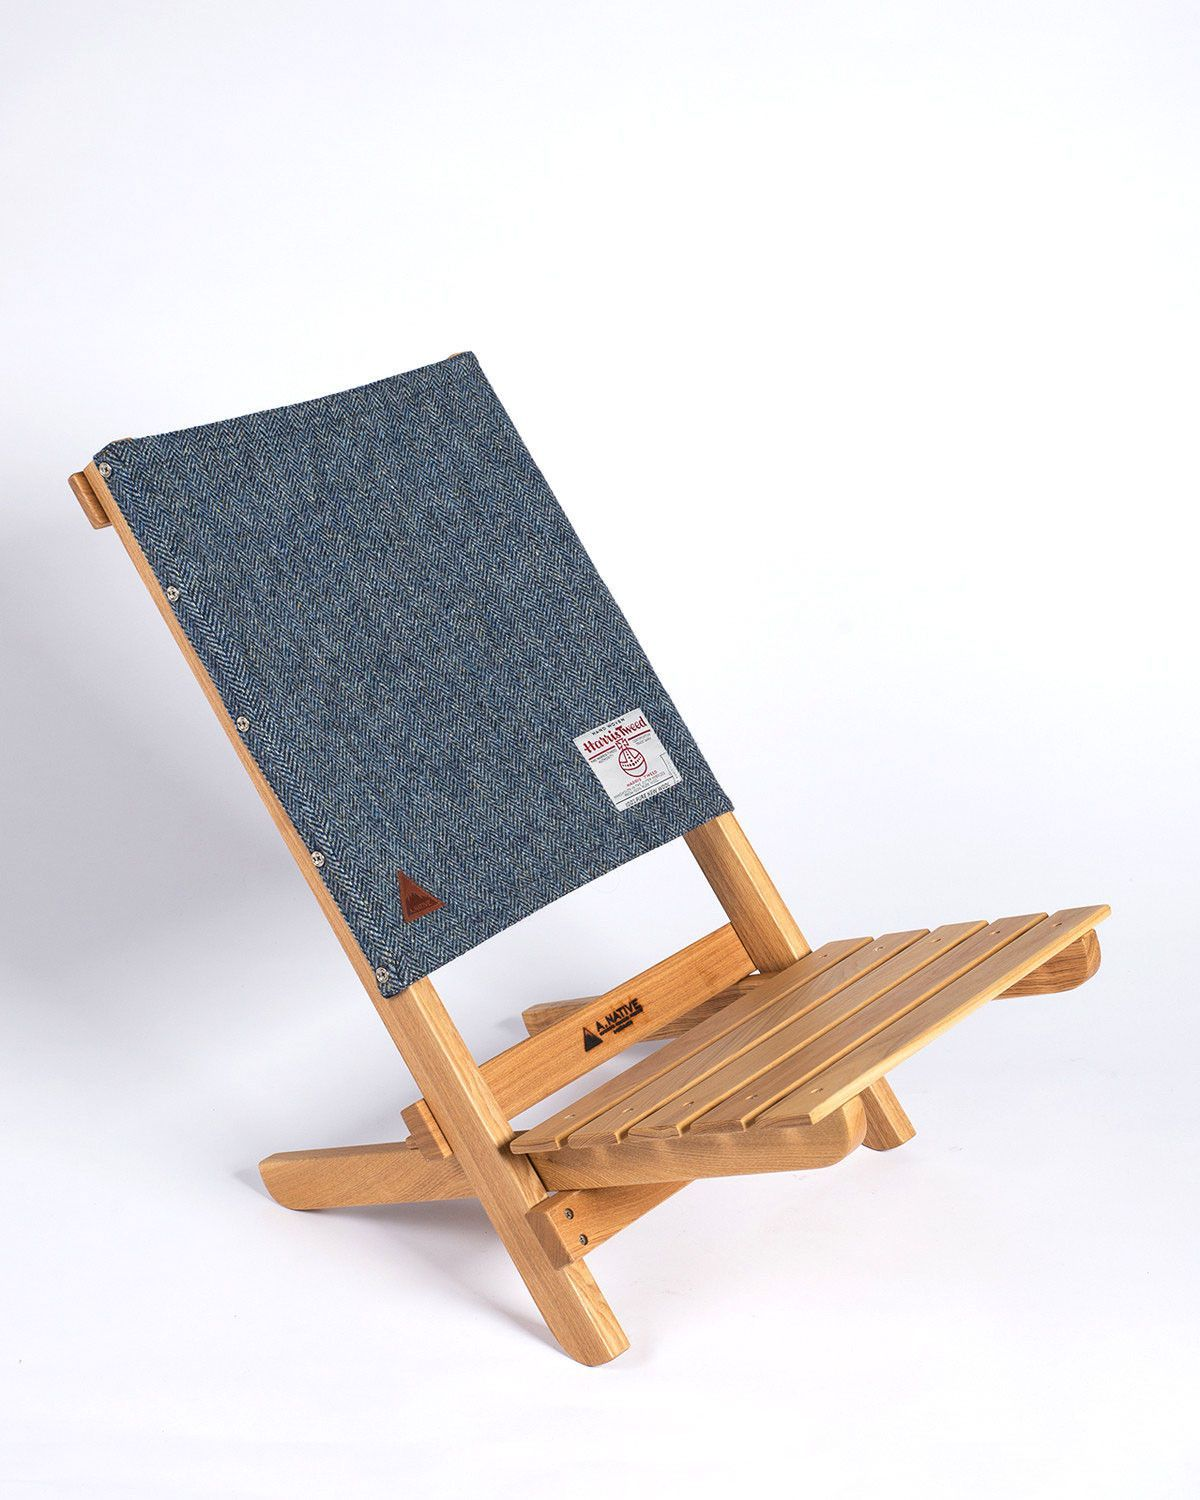 Strange A Native Lounge Chair Harris Tweed Lounge Chairs In 2019 Unemploymentrelief Wooden Chair Designs For Living Room Unemploymentrelieforg